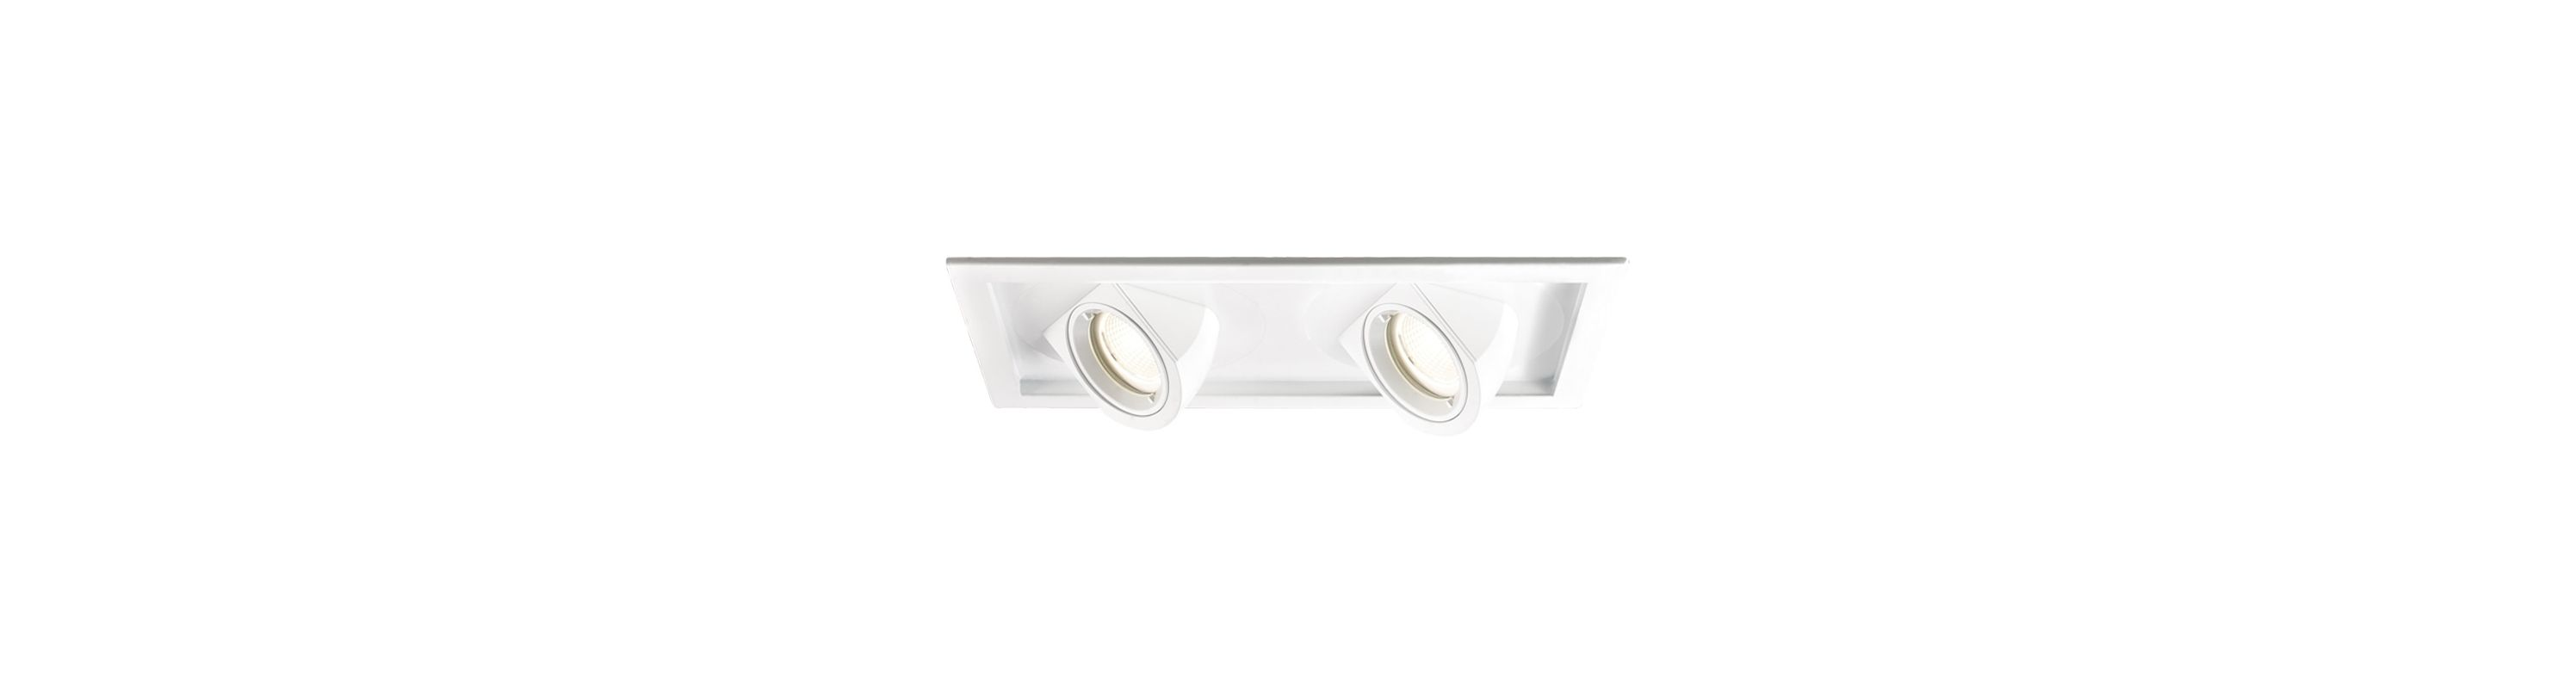 WAC Lighting MT-5LD325H Multiple Spot LED Recessed Light Housing for Sale $351.00 ITEM#: 2426904 MODEL# :MT-5LD325H-NA UPC#: 790576279299 :